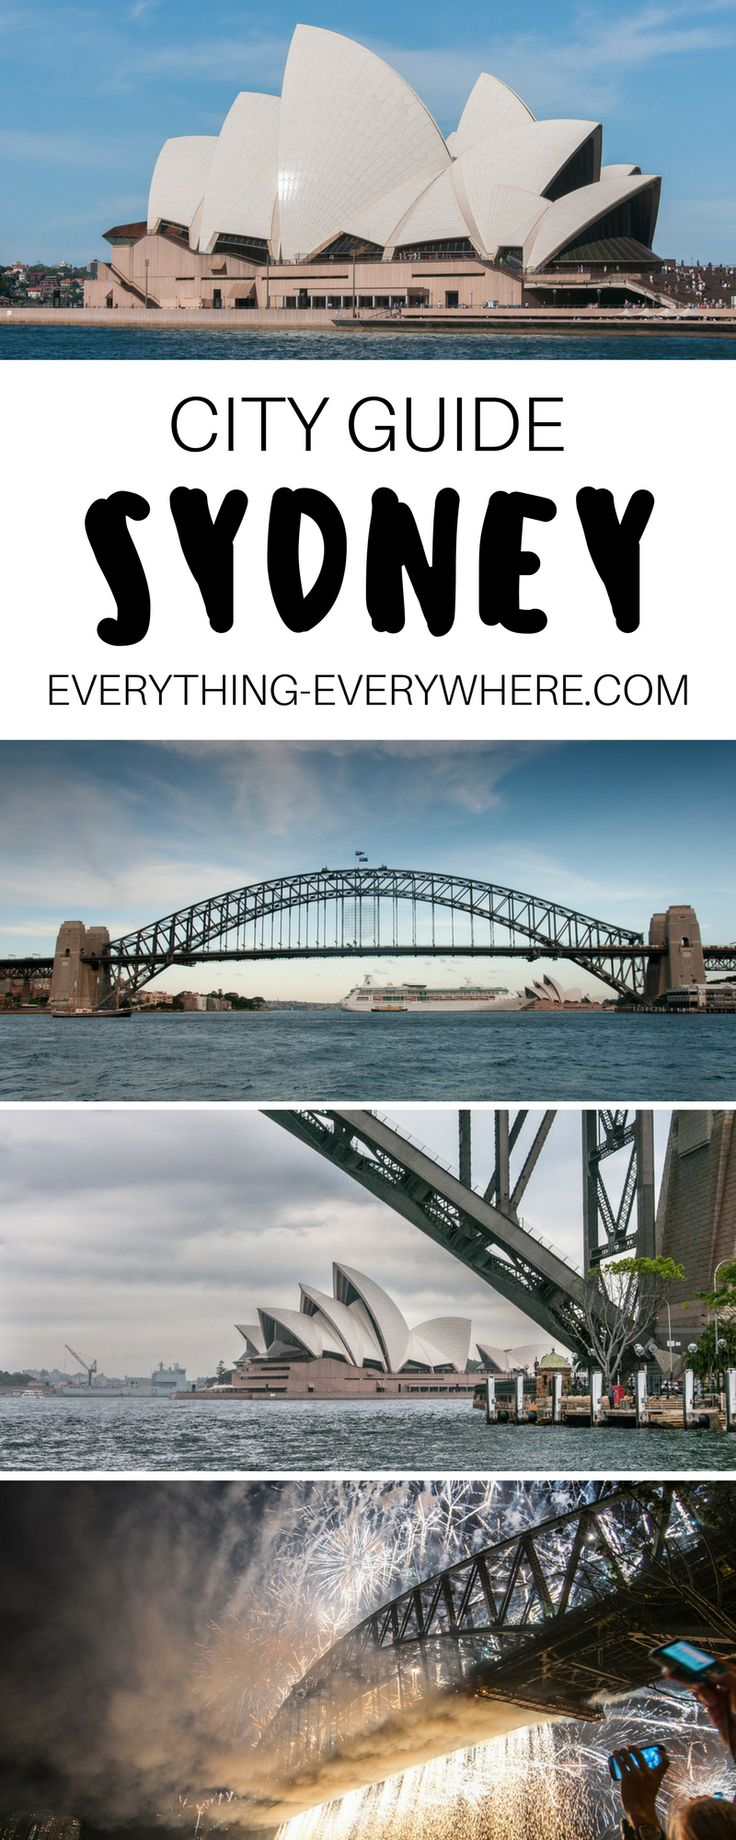 A complete guide to visiting Sydney, Australia. Things to do and see including the Sydney Opera House, Harbour Bridge, Luna Park, Manly Beach + best Sydney food and cuisine and other practical tips for your trip.   Everything Everywhere Destination Guide#Sydney #Australia